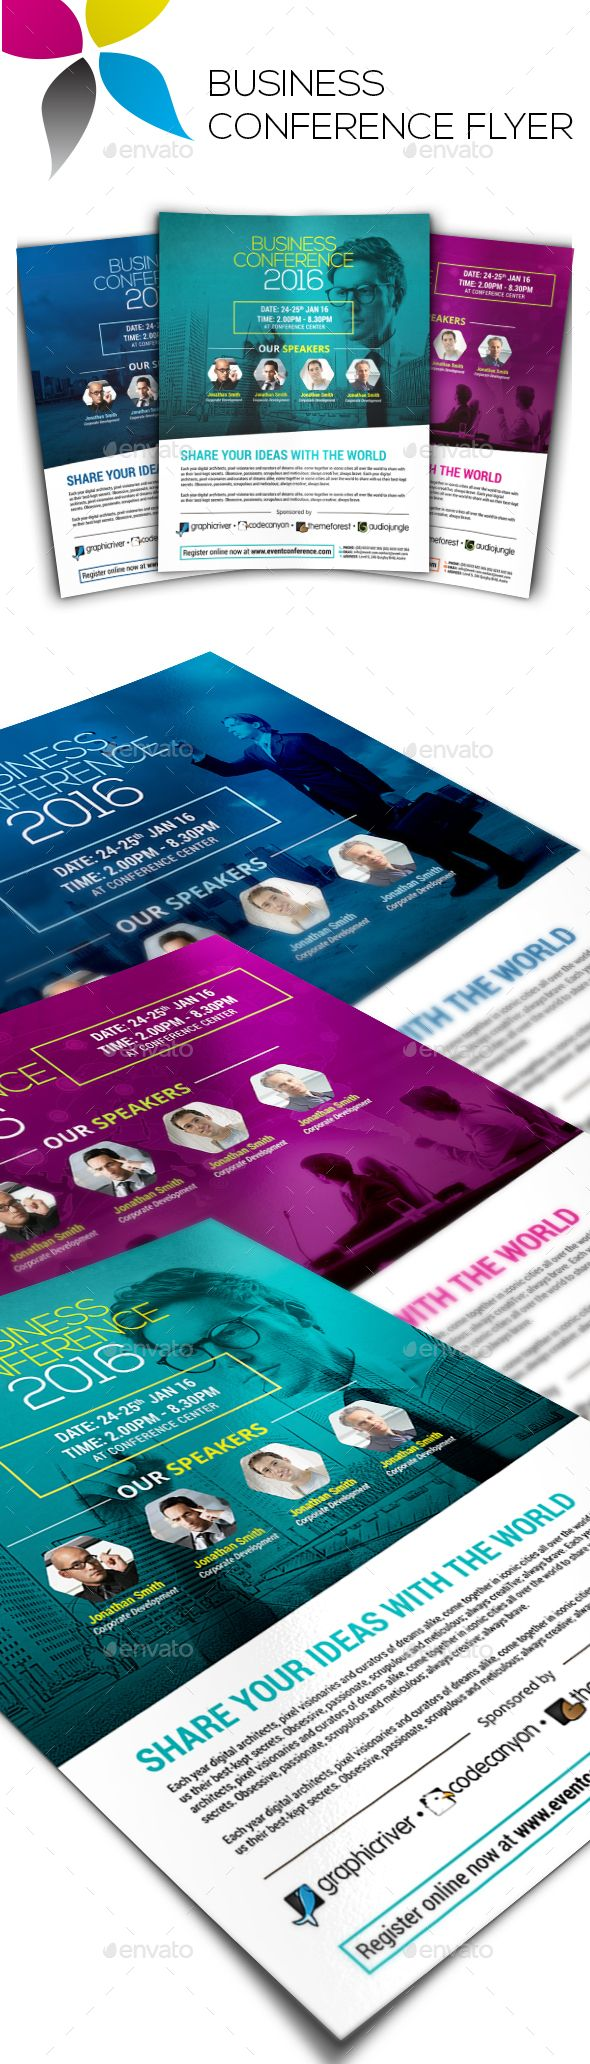 Business Conference Flyer  Flyer Design Templates Flyer Template